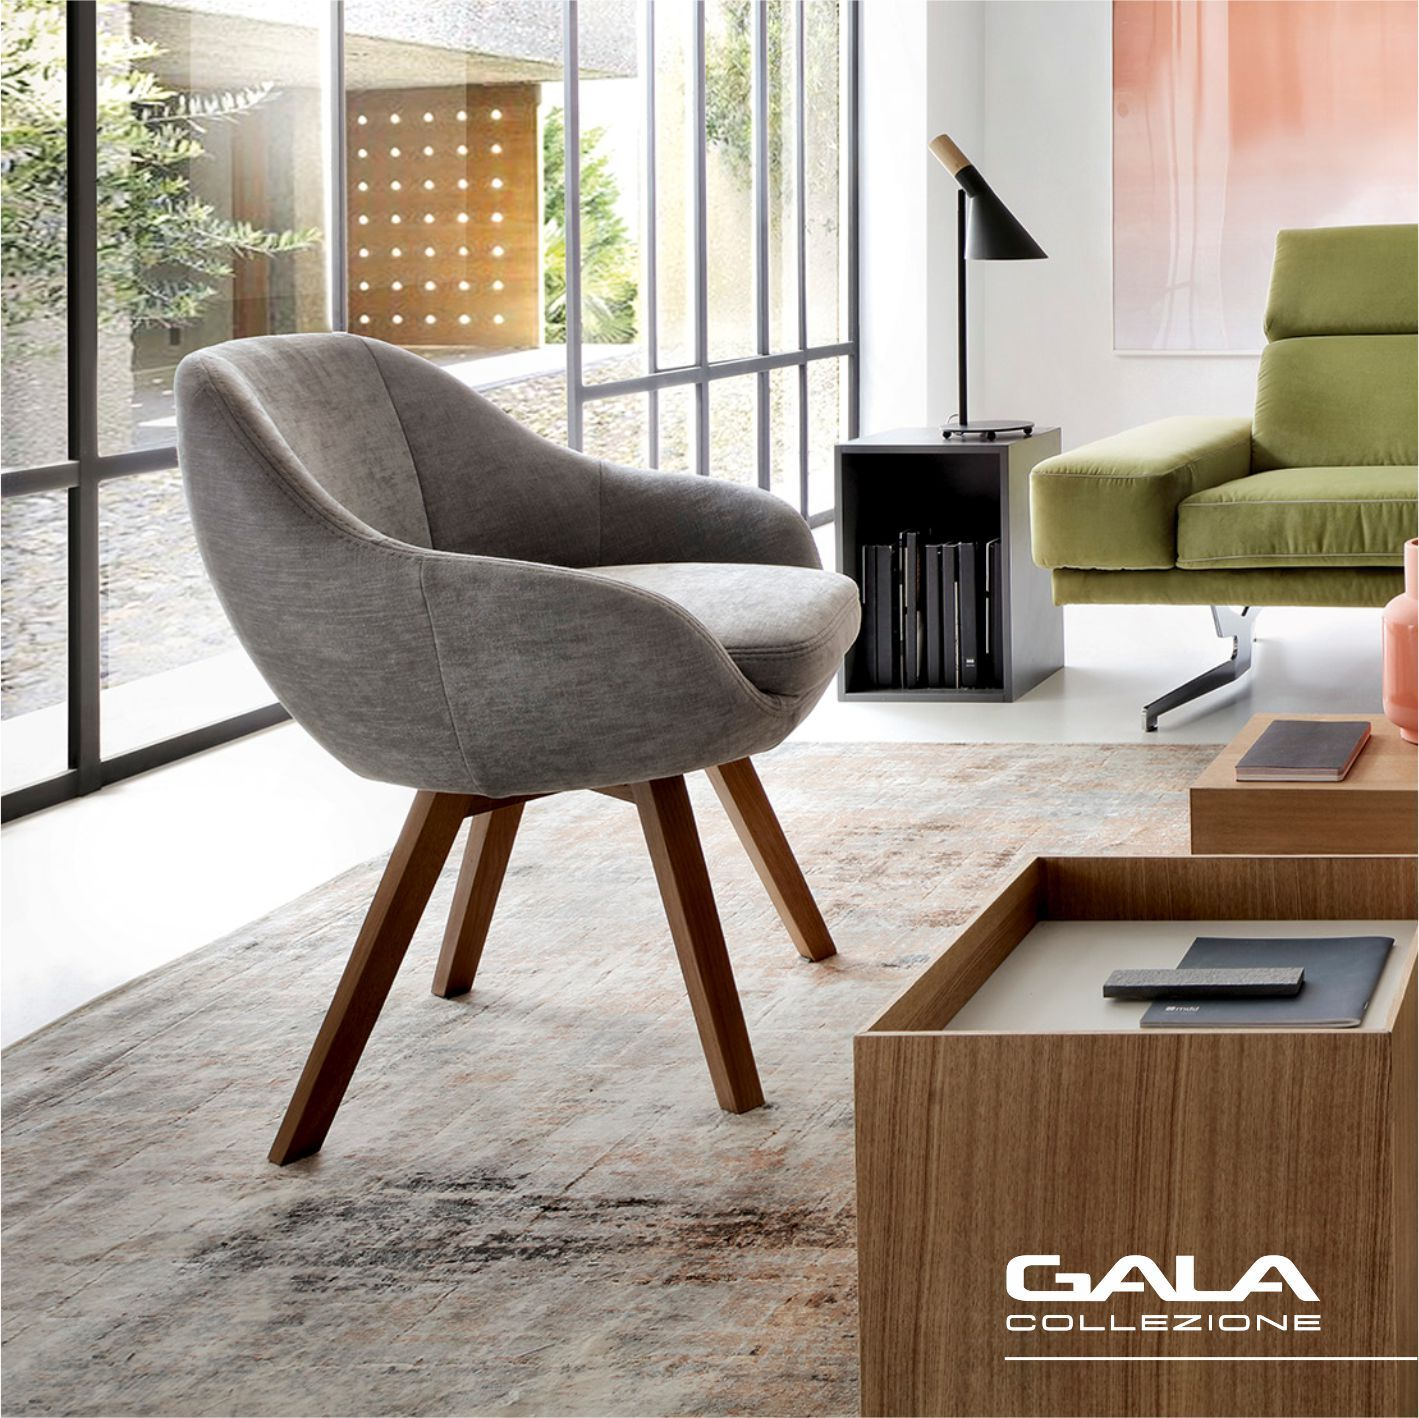 Modern Comfortable Chair Xiv Gala Collezione Chair Comfortable Chair Living Room Chairs Elegant living room chairs